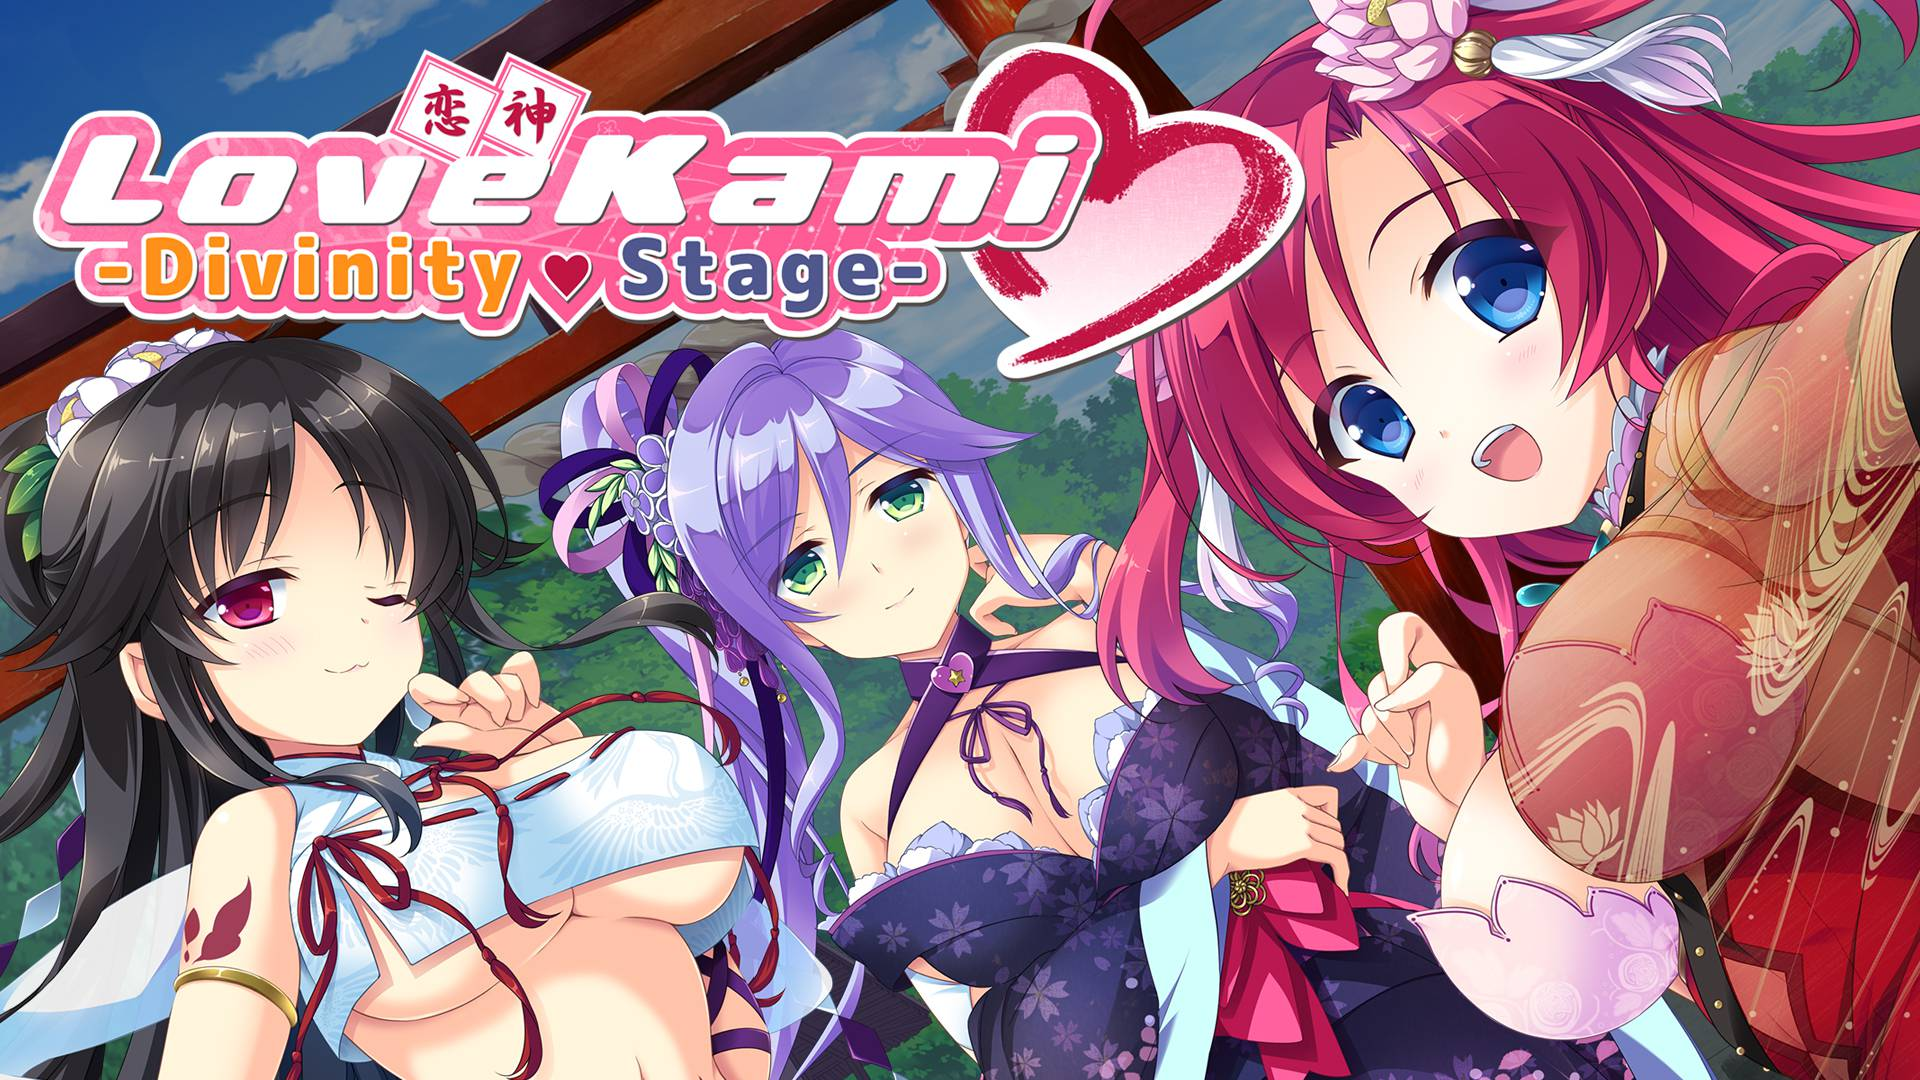 LoveKami: Divinity Stage Video